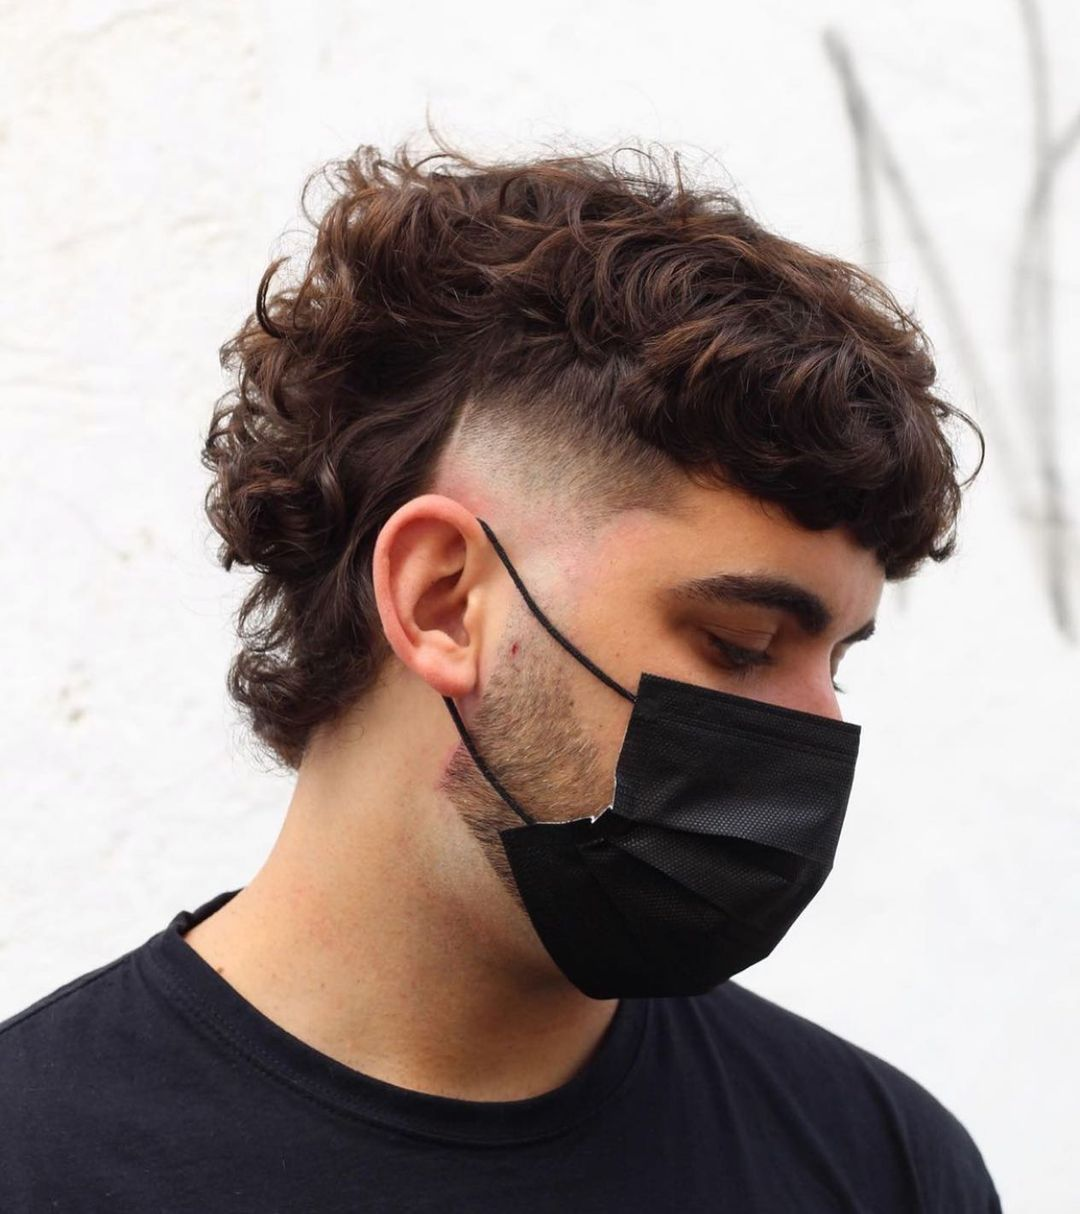 Color-fast men's hairstyles for short hair - cool men's hairstyles 2021